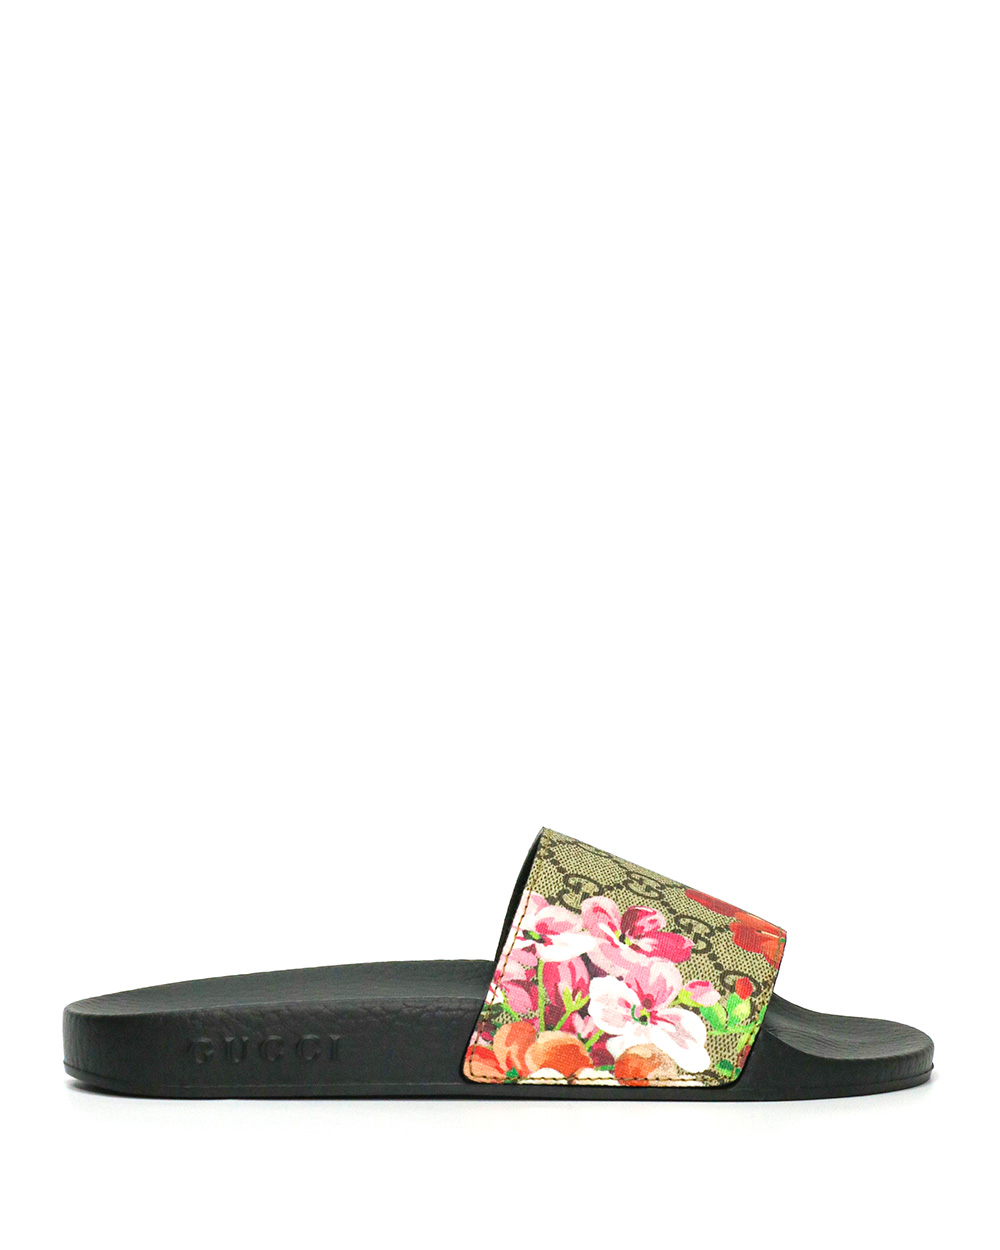 GG Blooms Supreme Floral Slide Sandals